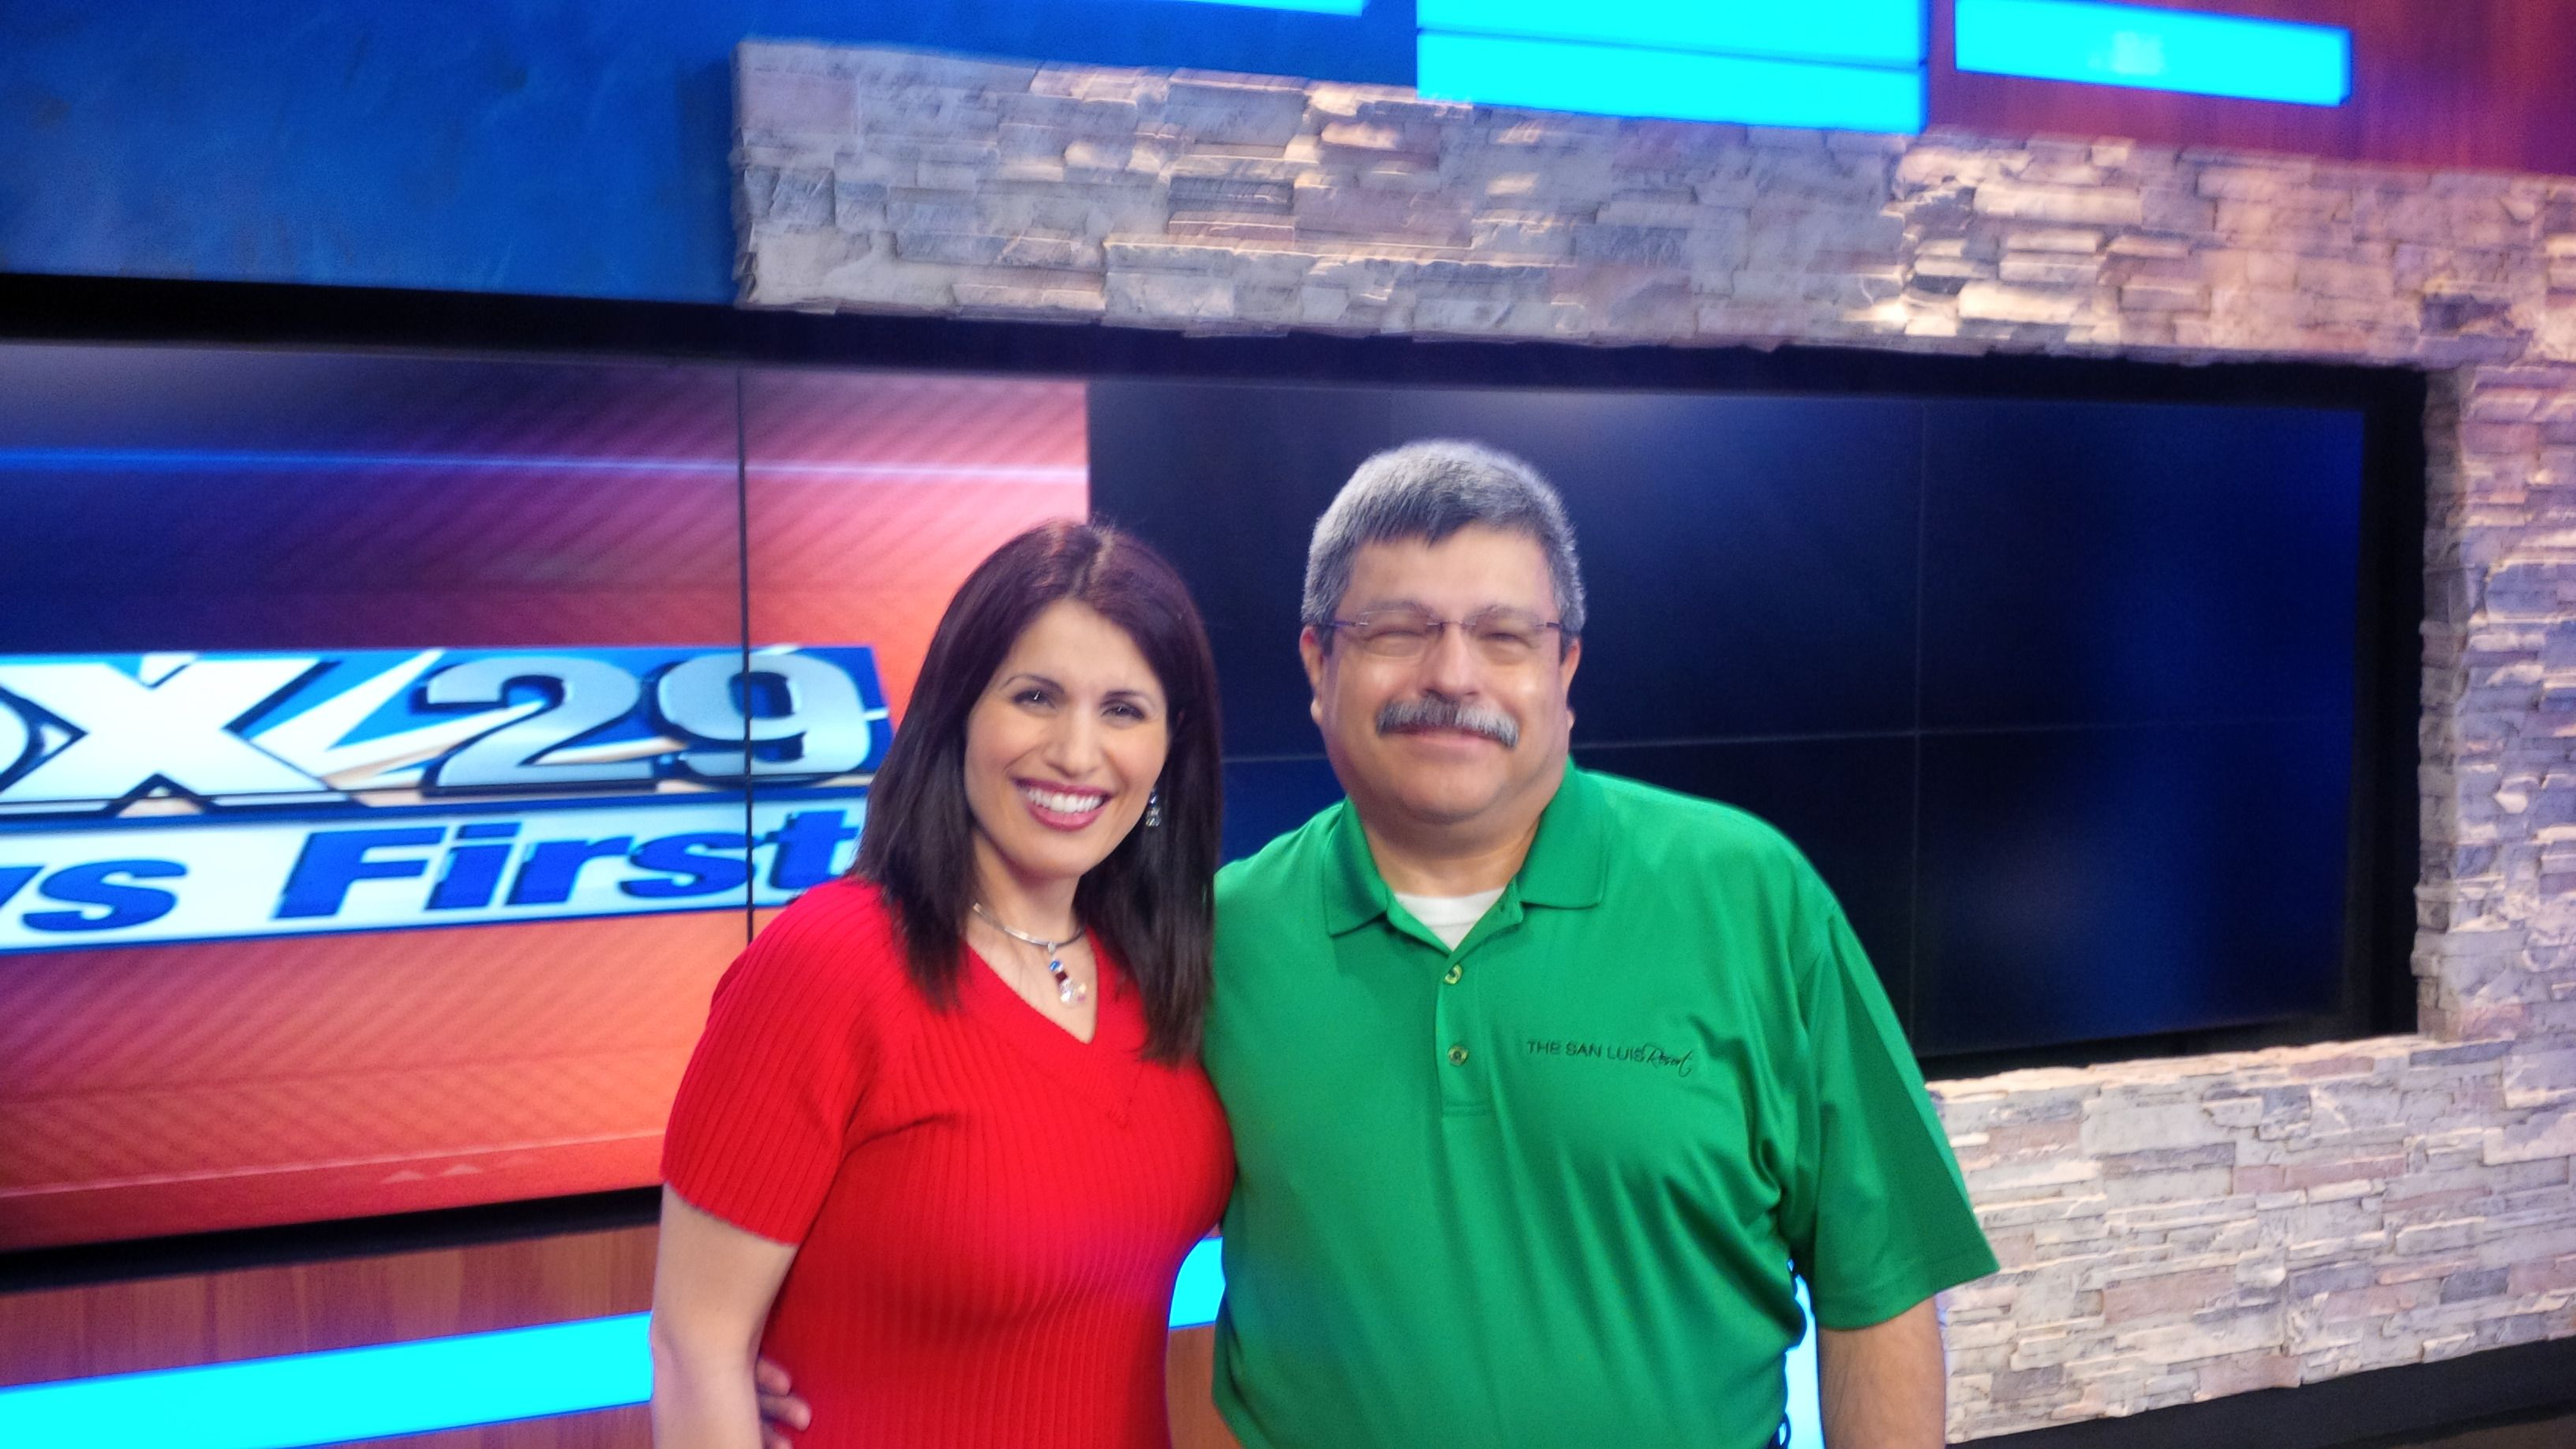 Sporting bright summer colors in-studio with the always